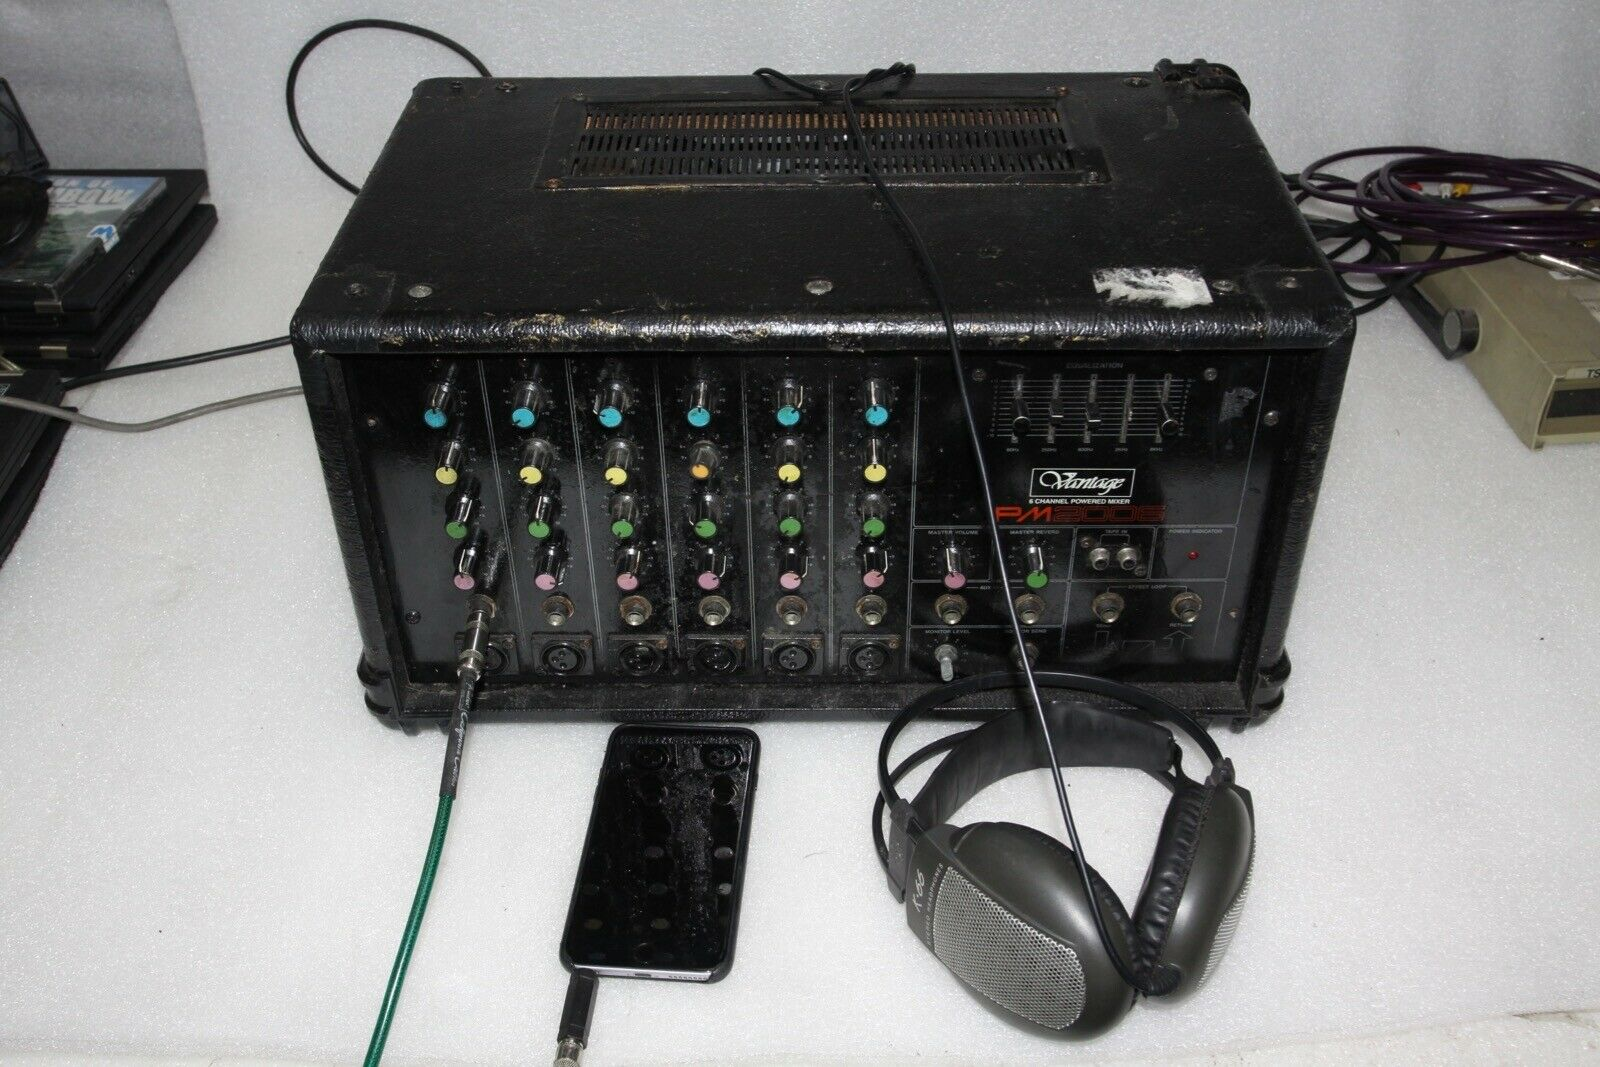 Vantage PM2006 6 Channel Powerot Mixer - Used - Minor issues